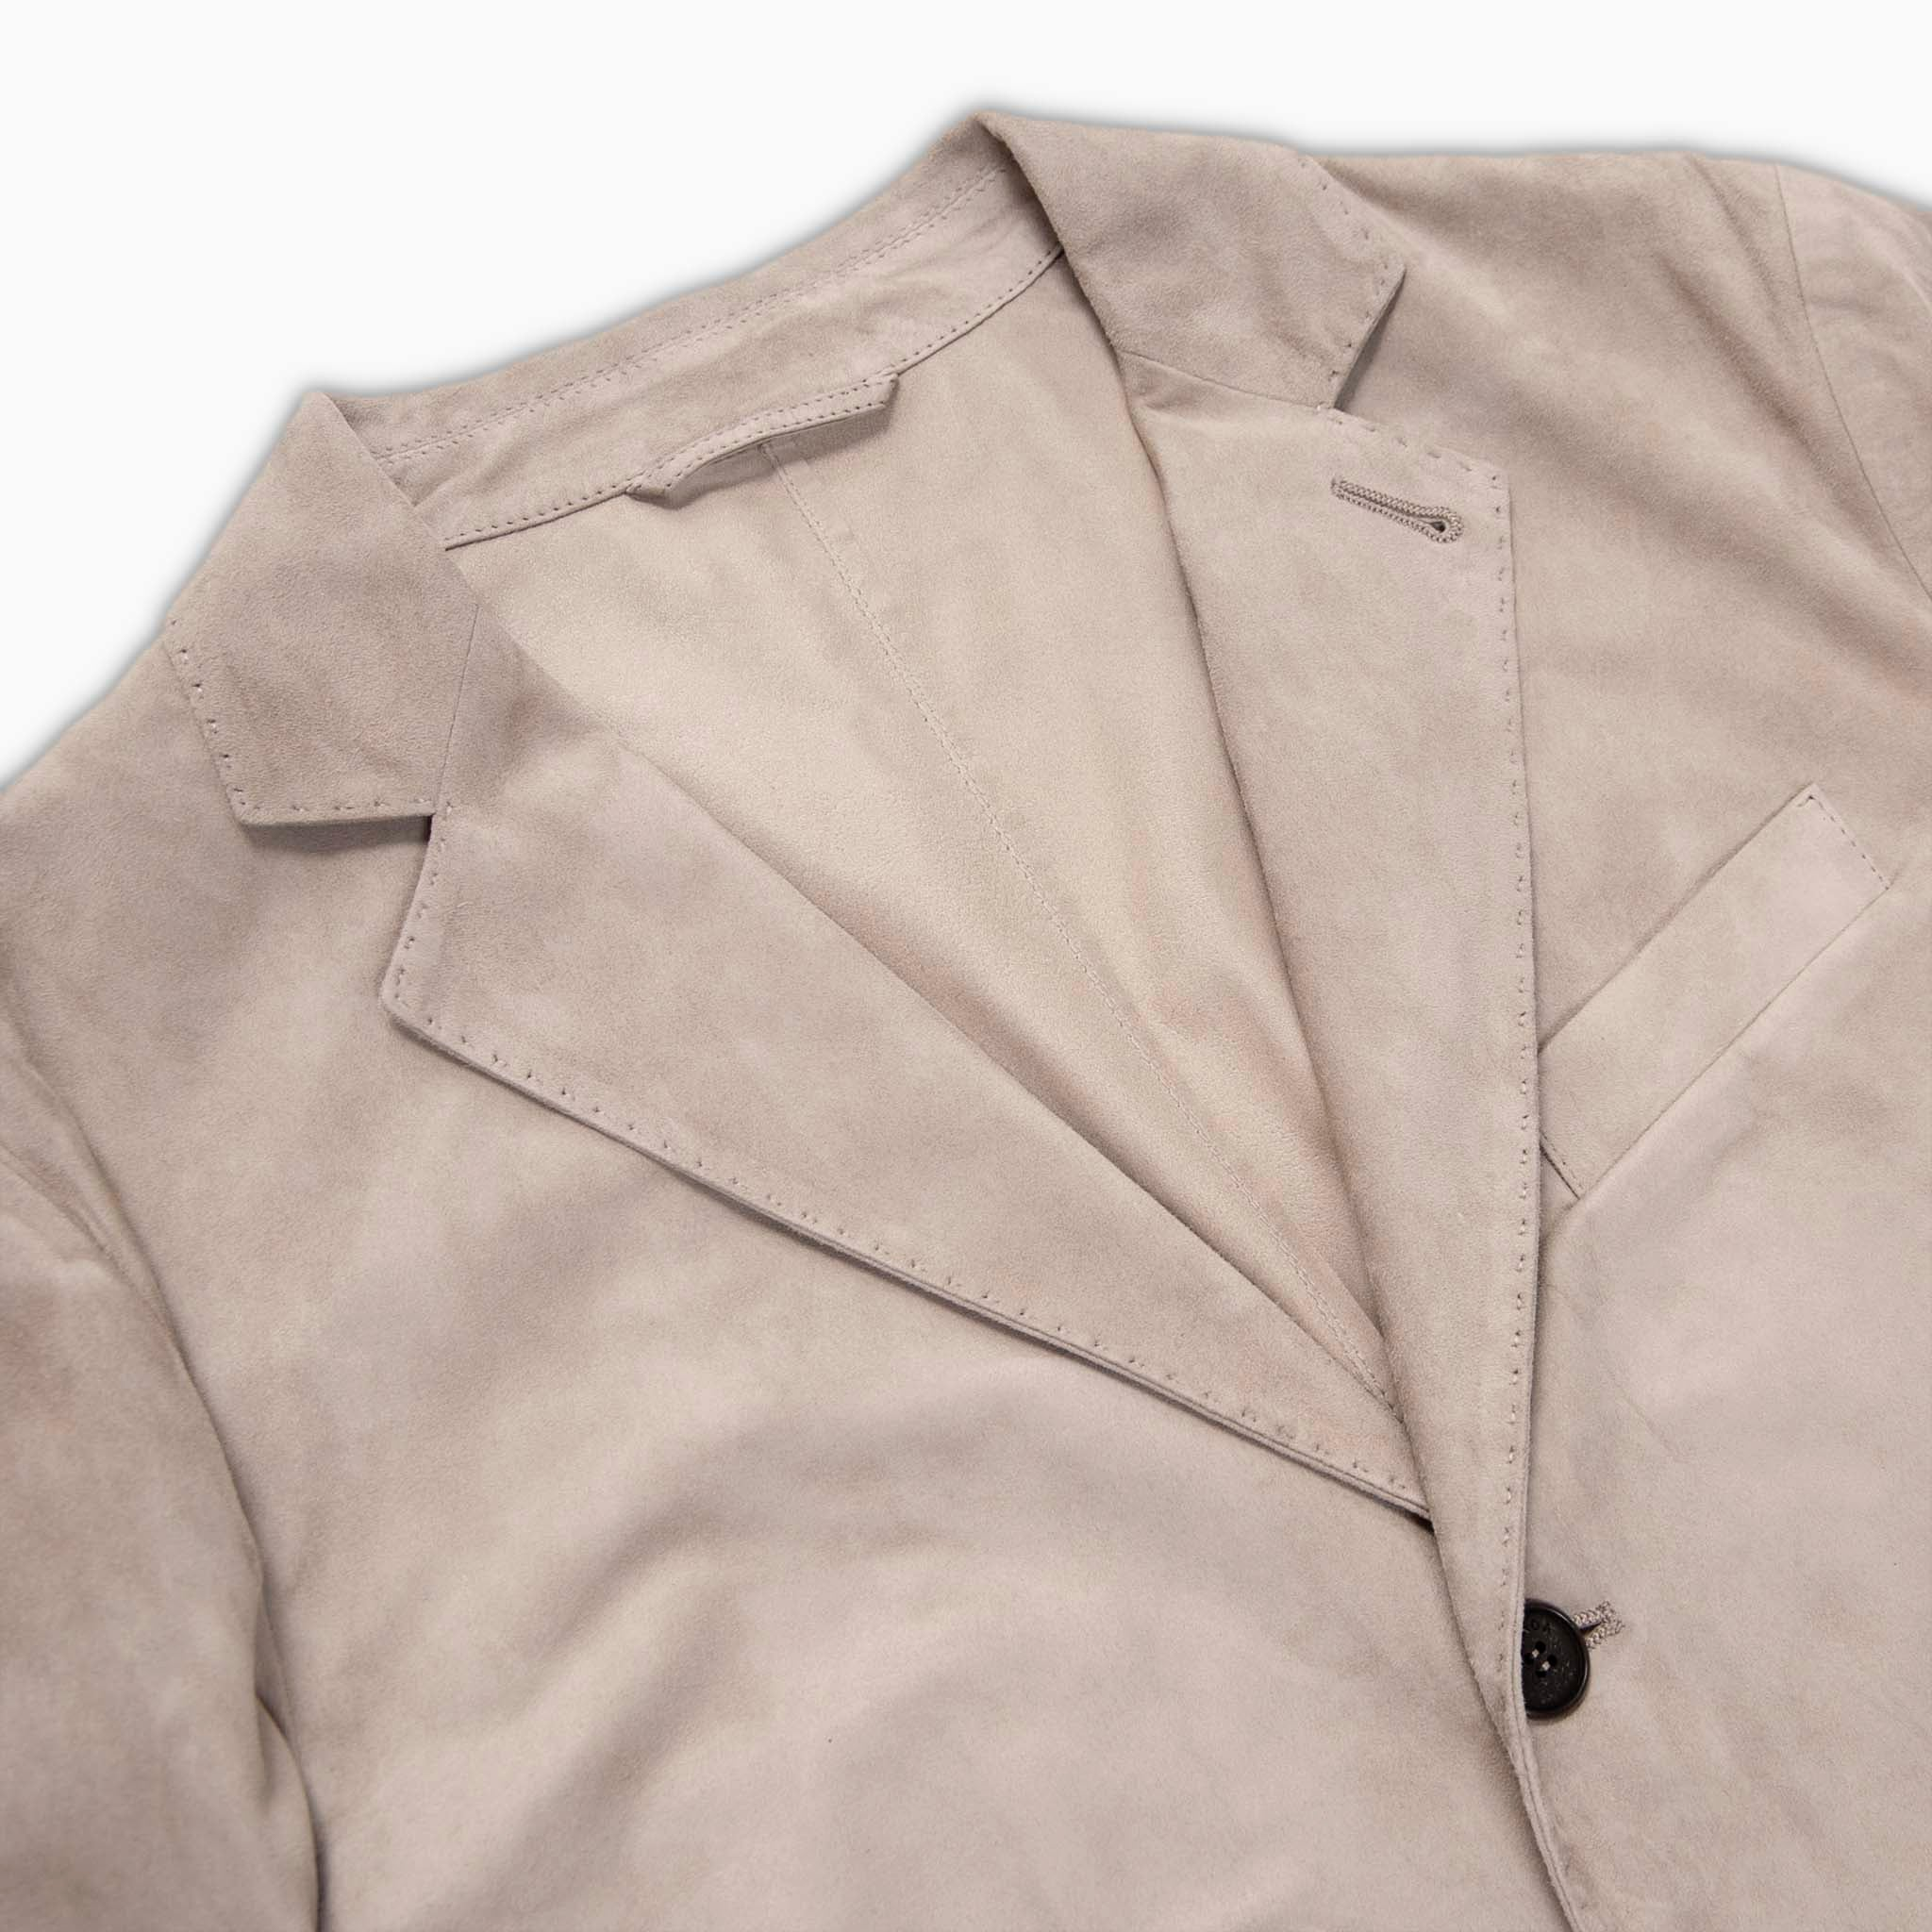 Lion suede blazer (light sand)